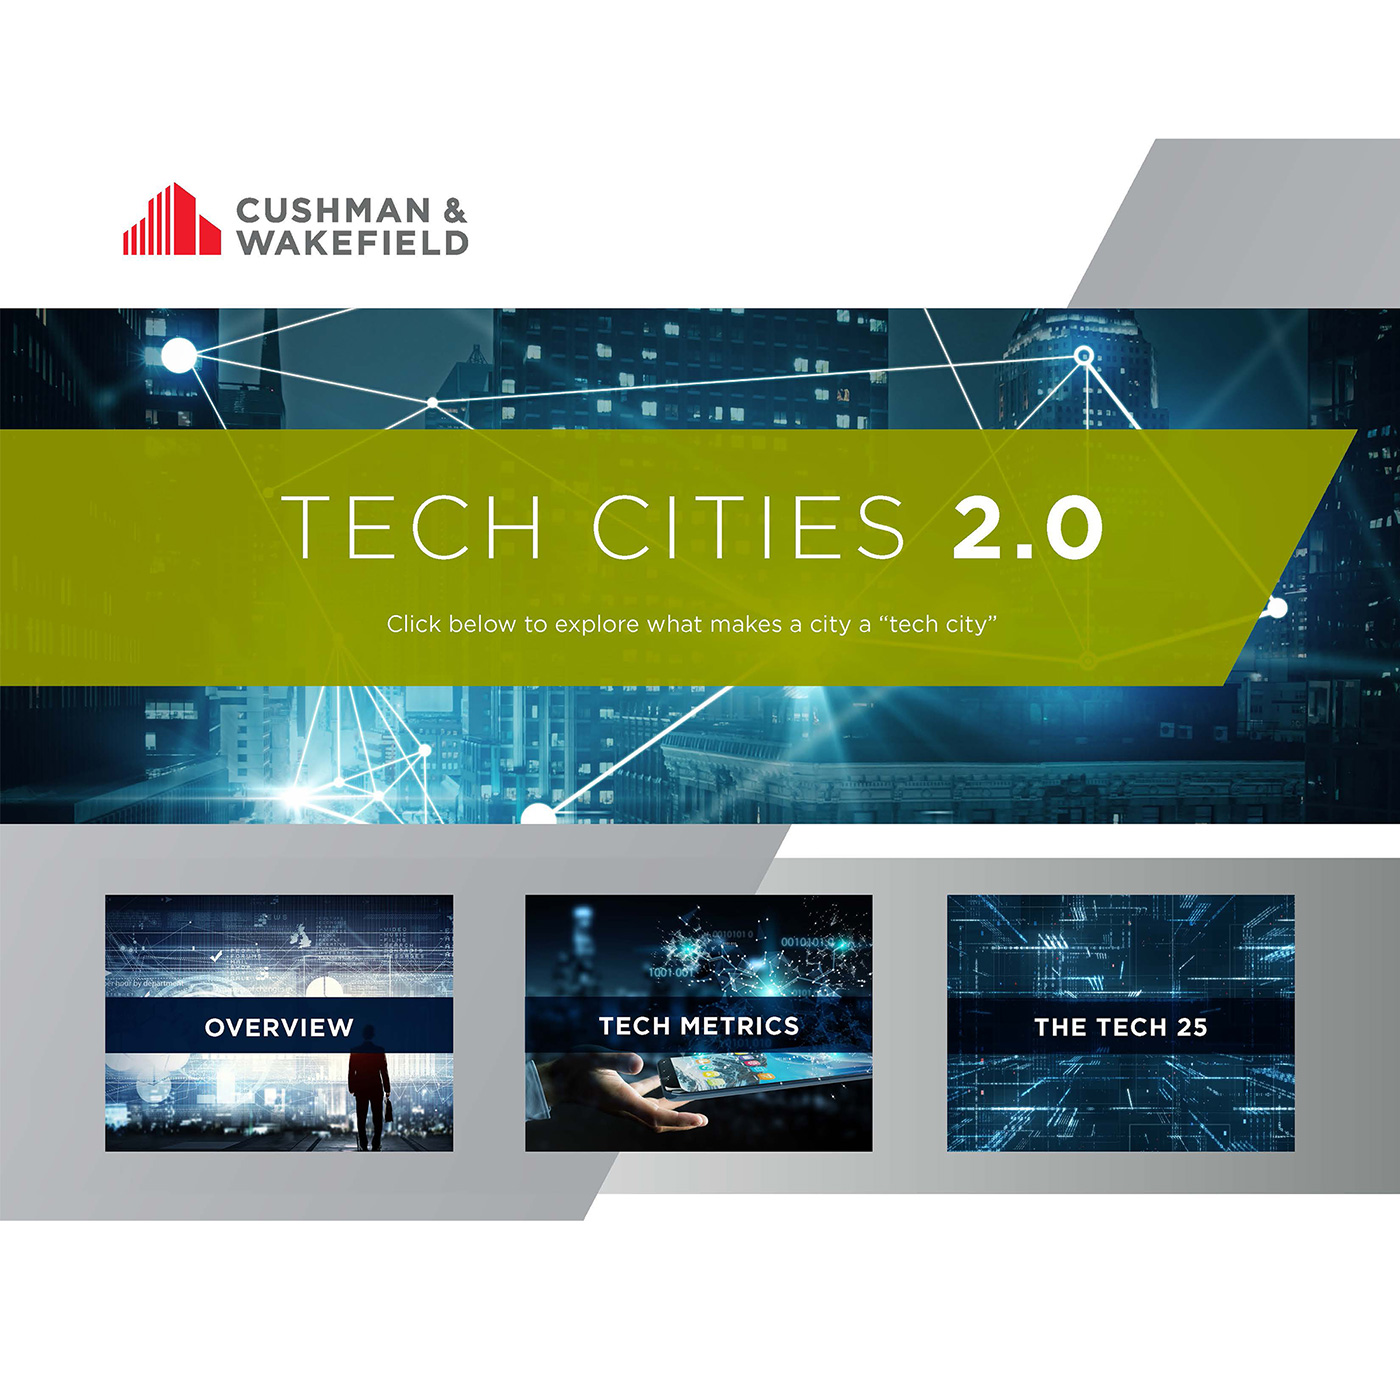 Tech Cities 2.0